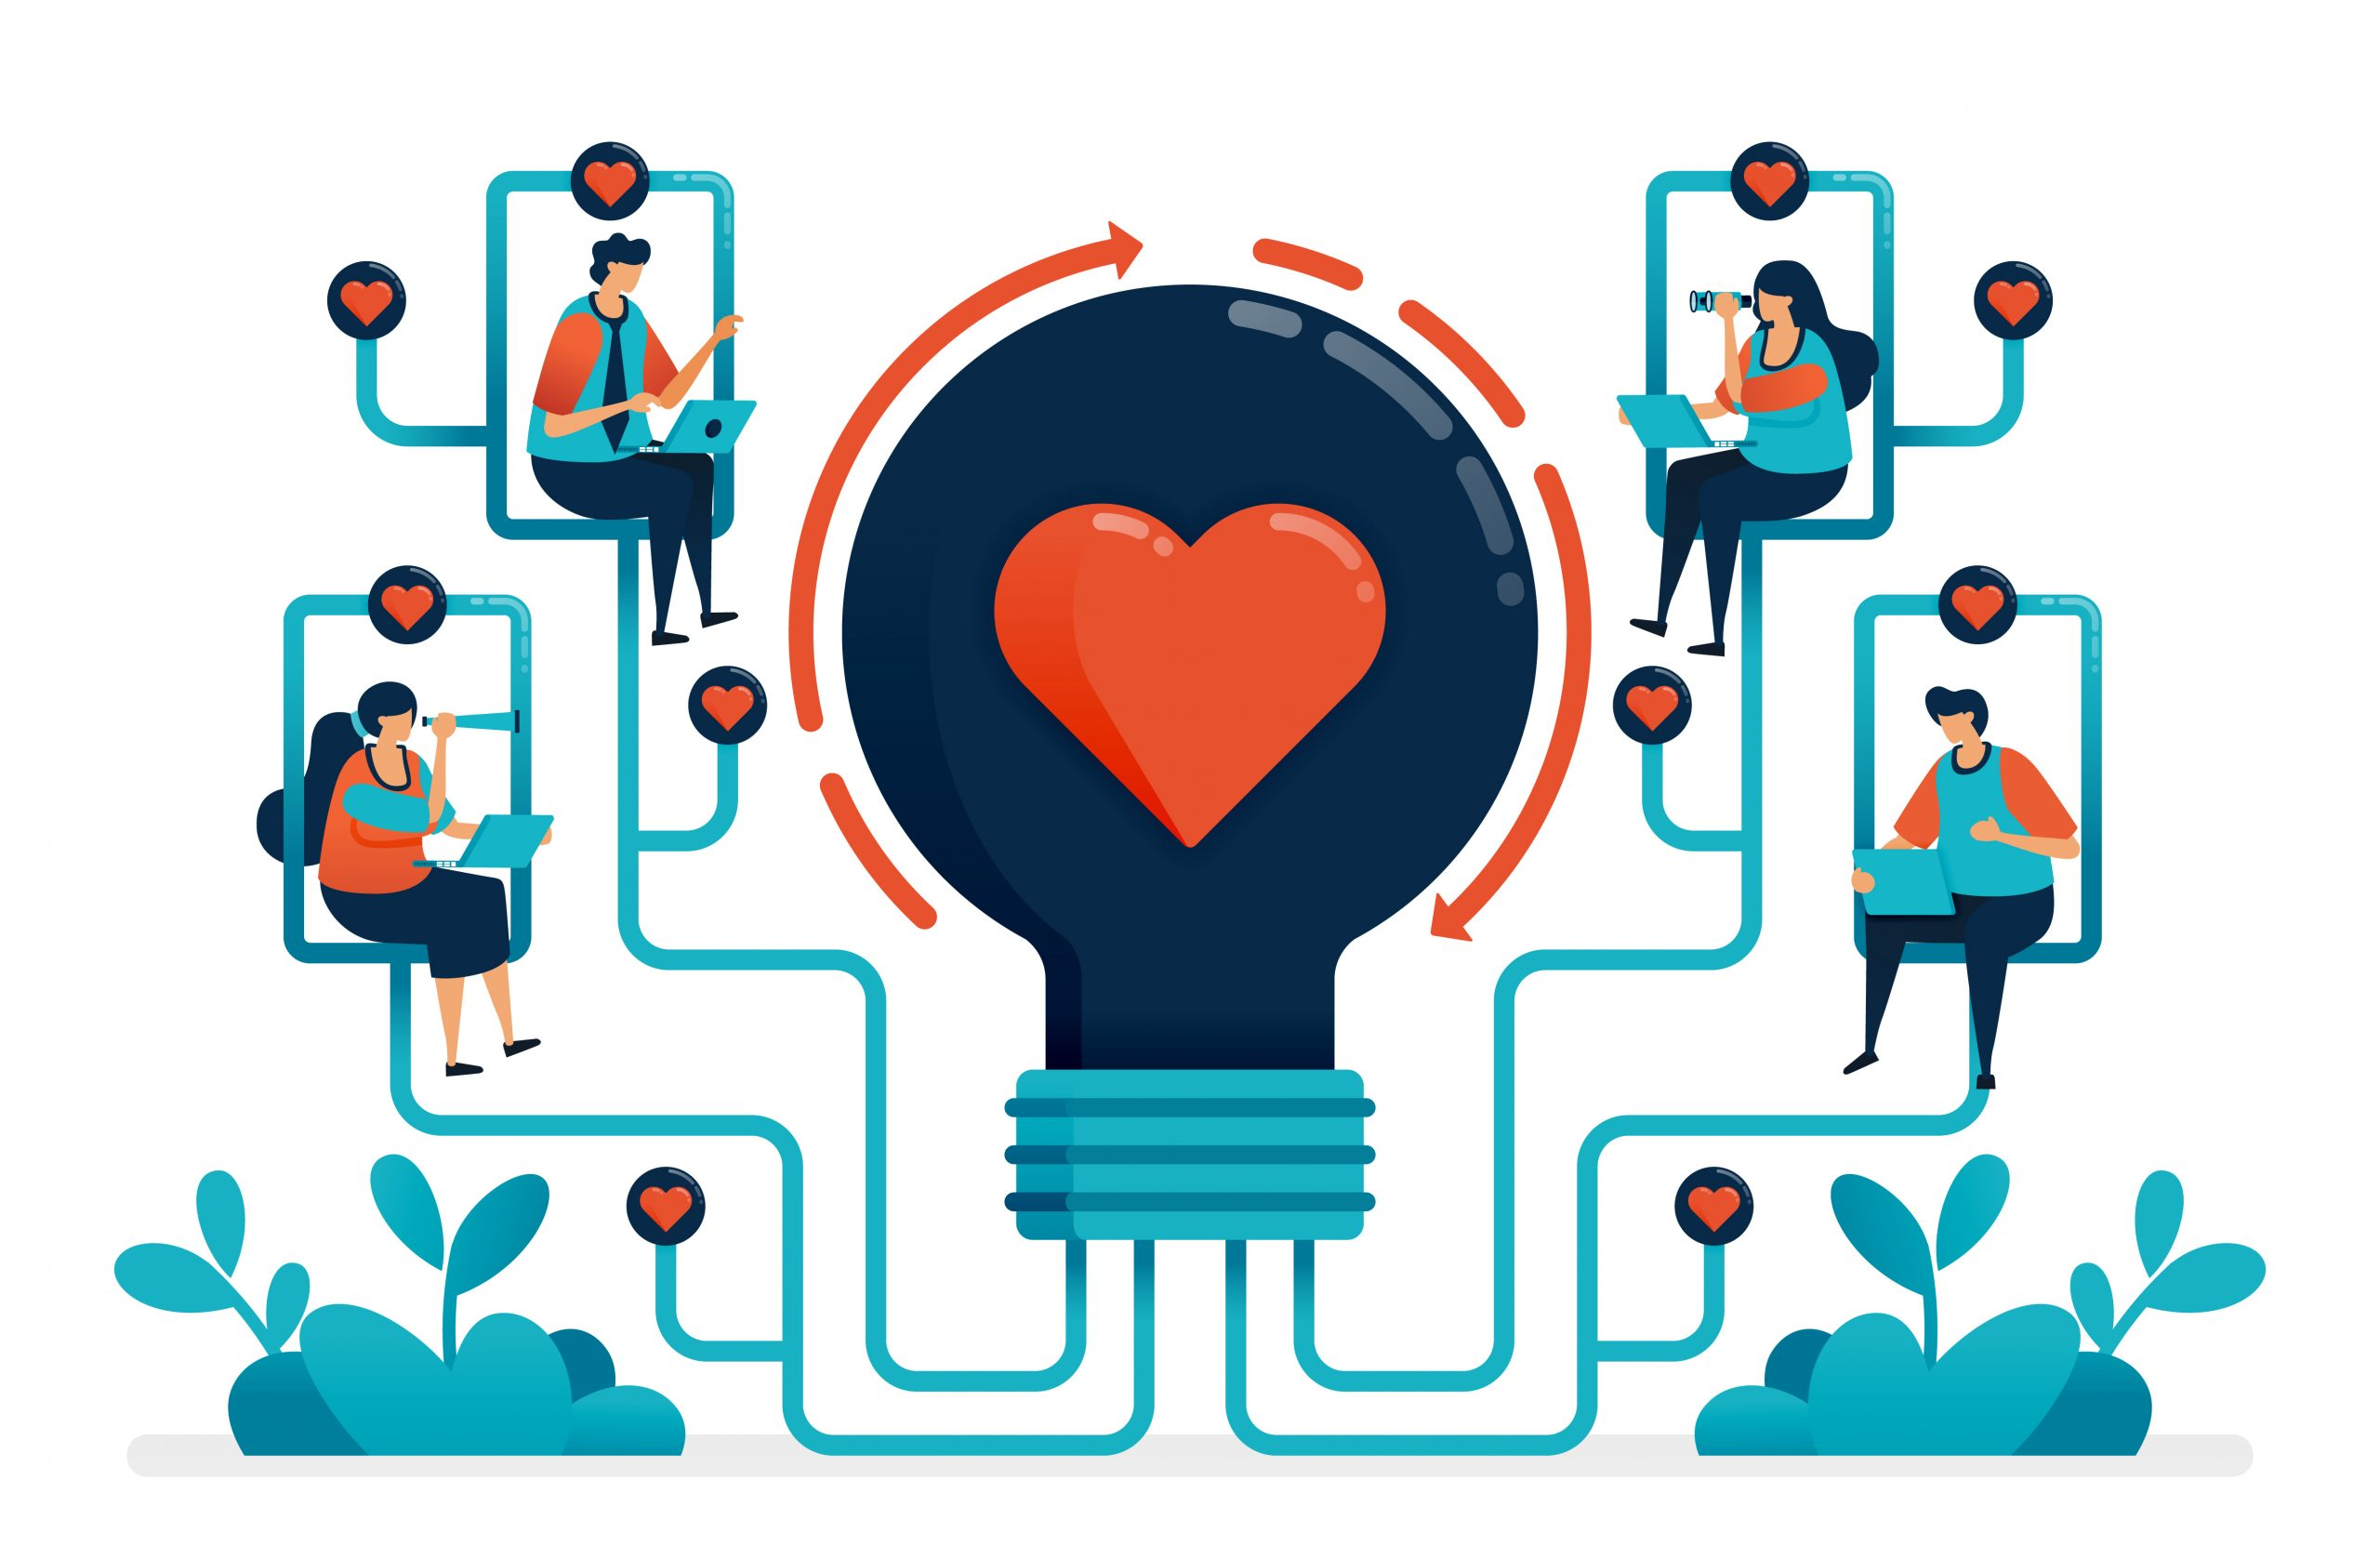 Artificial intelligence to match partner and relationship. Ideas